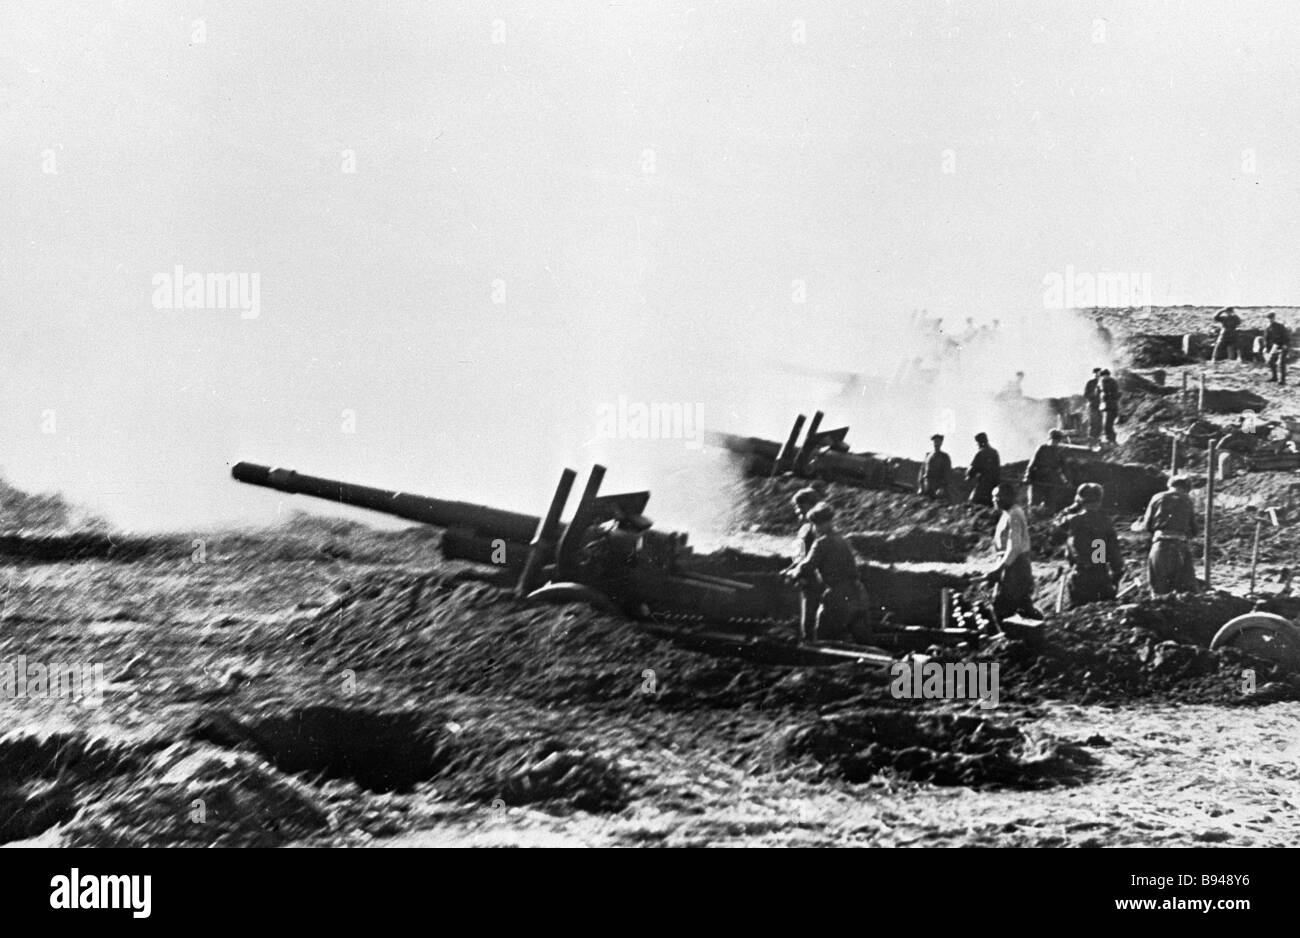 Soviet artillery in Danzig in the WWII times - Stock Image